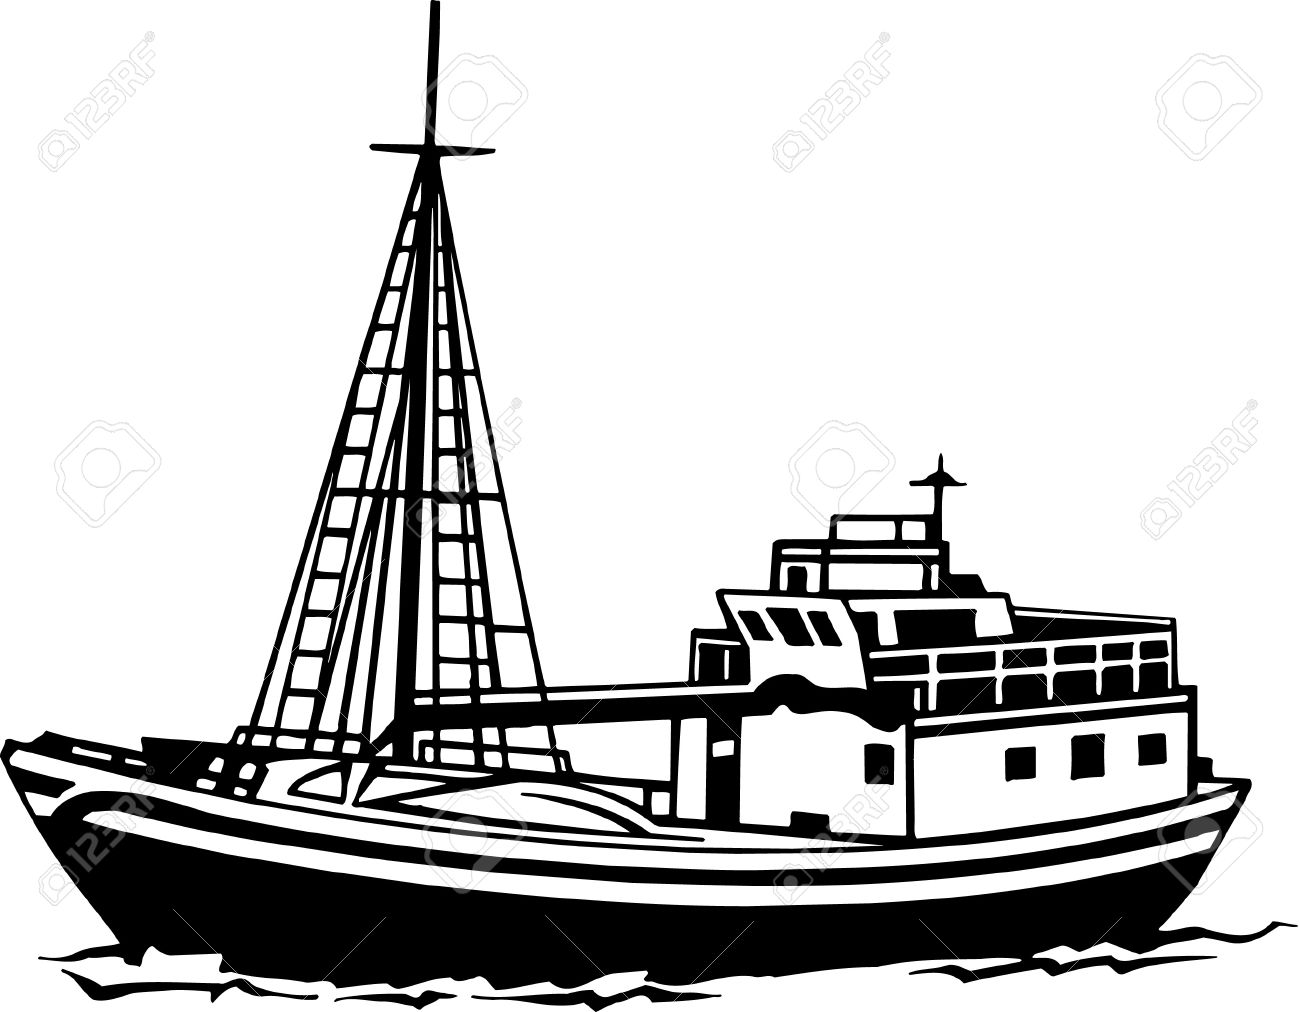 Free images. Boating clipart fishing boat